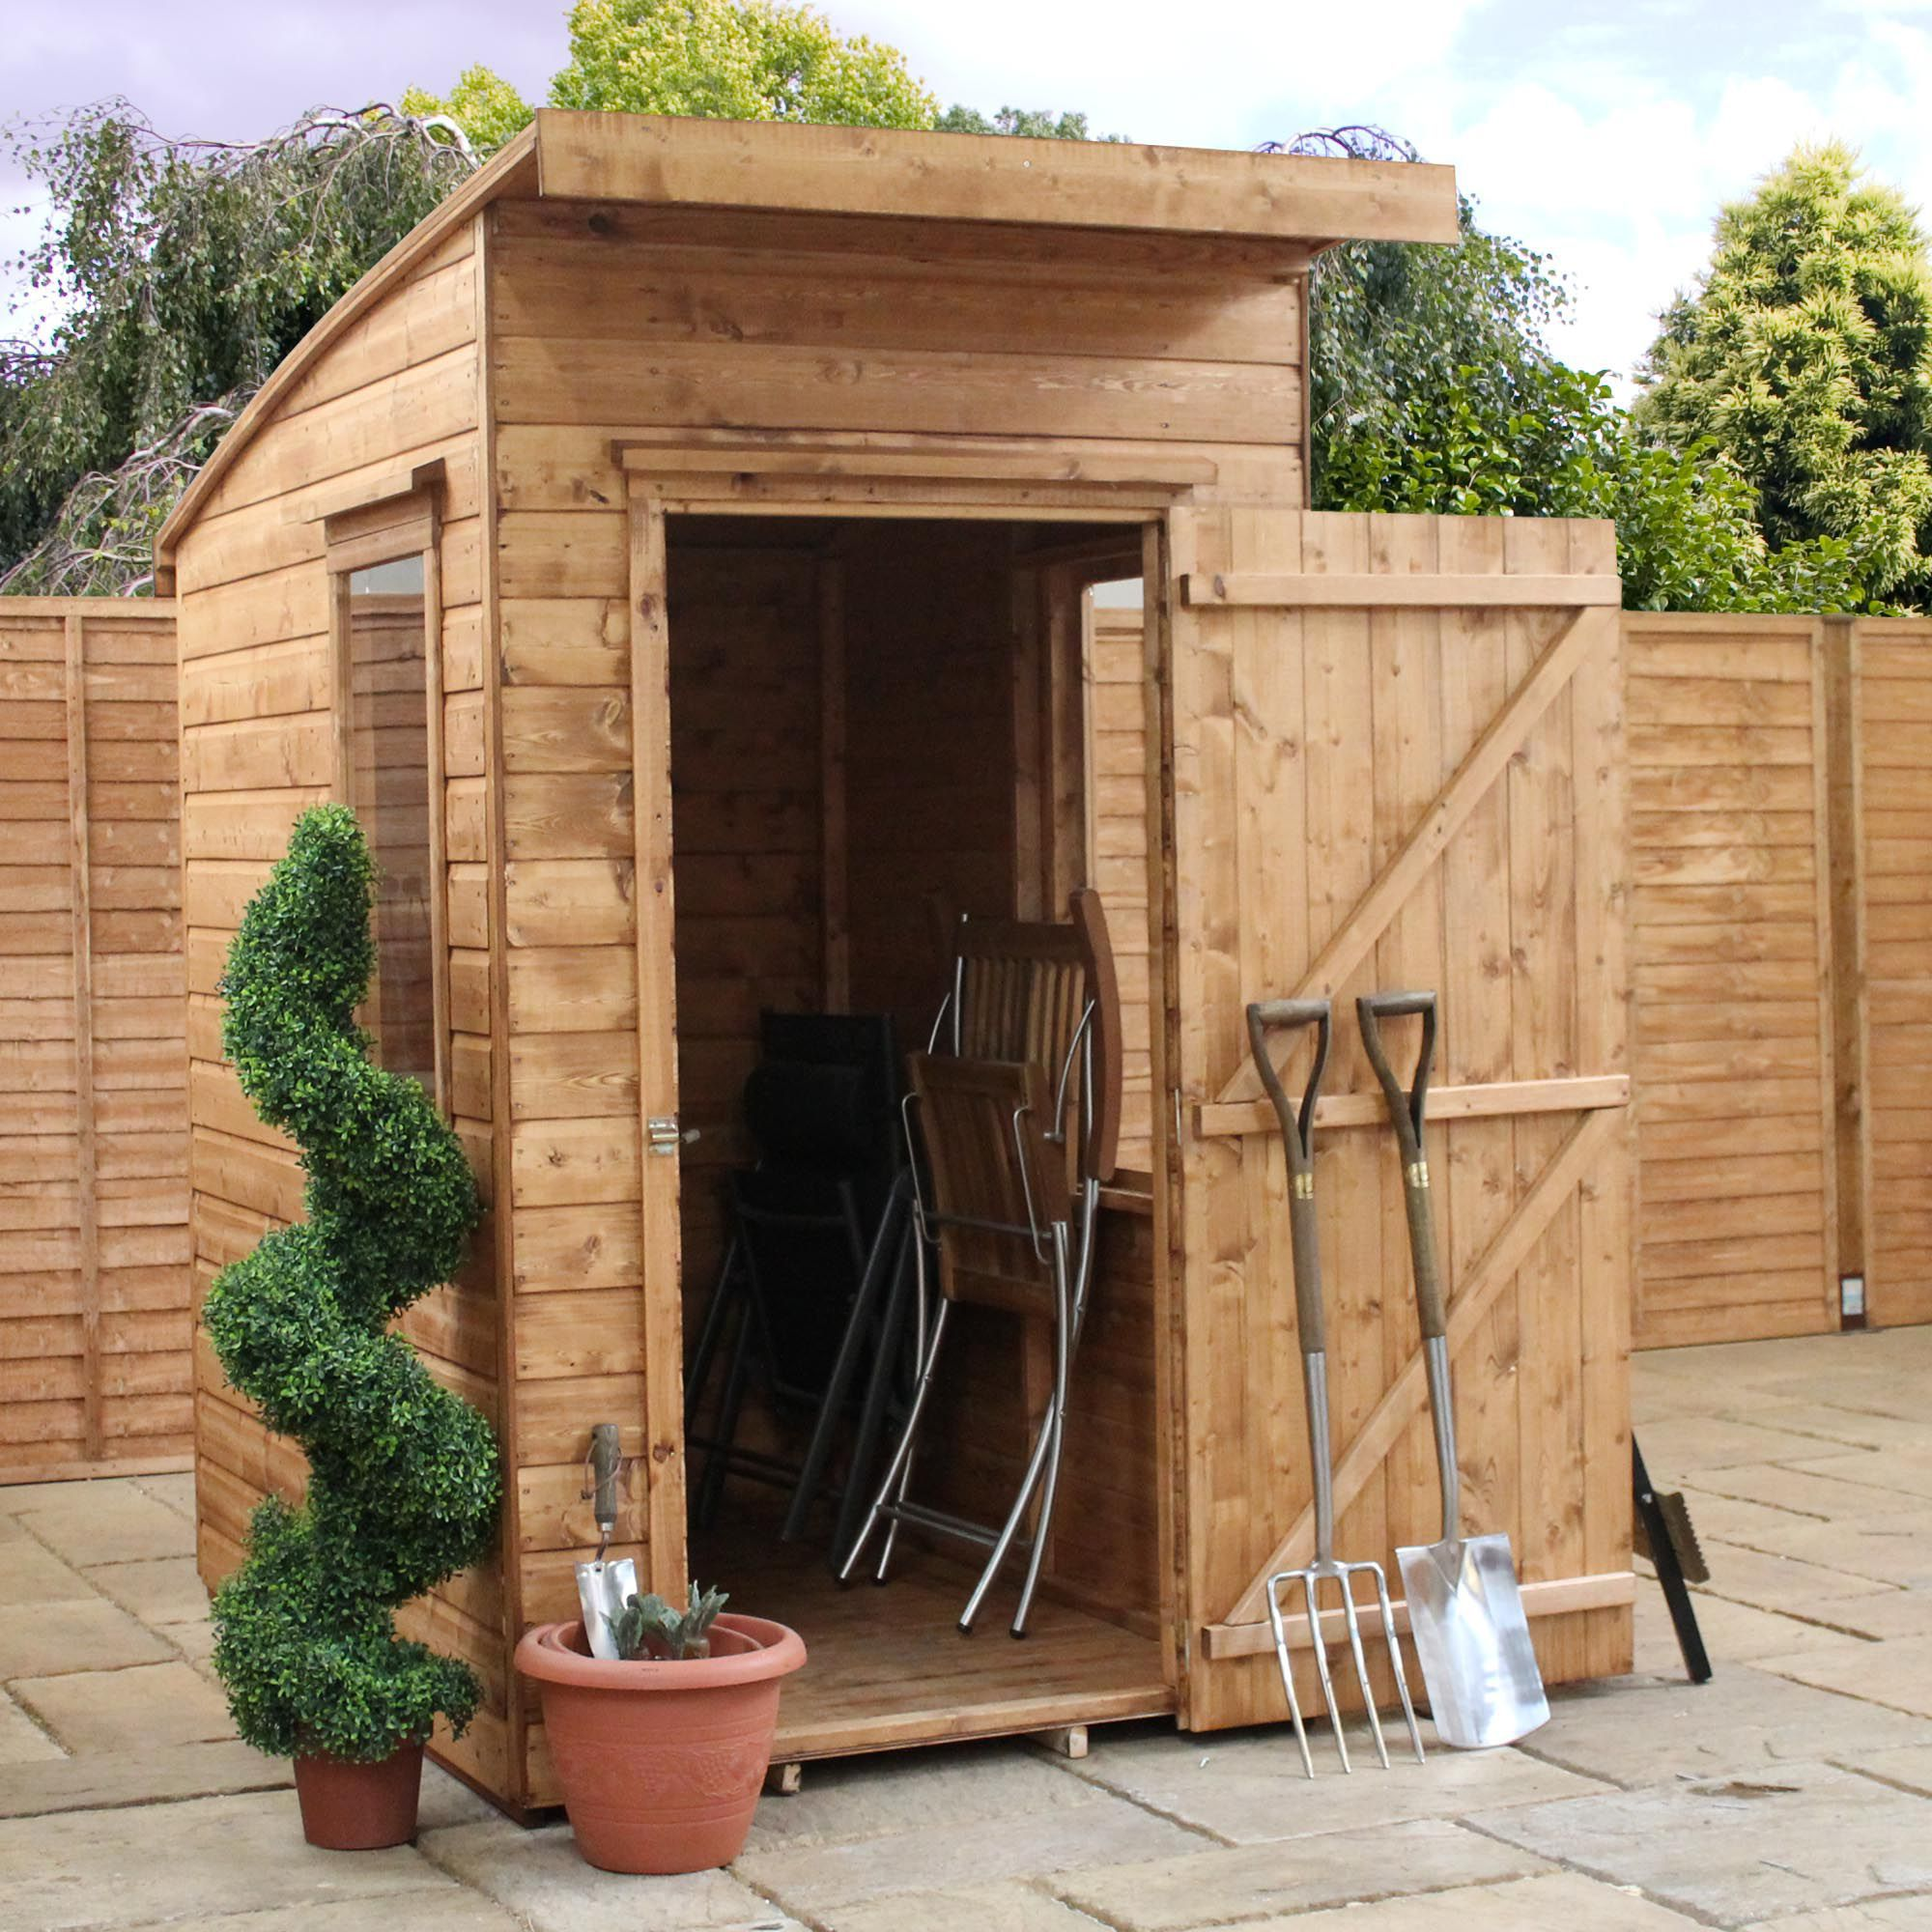 6x4 aero curved roof shiplap wooden shed departments for Garden shed 6x4 sale